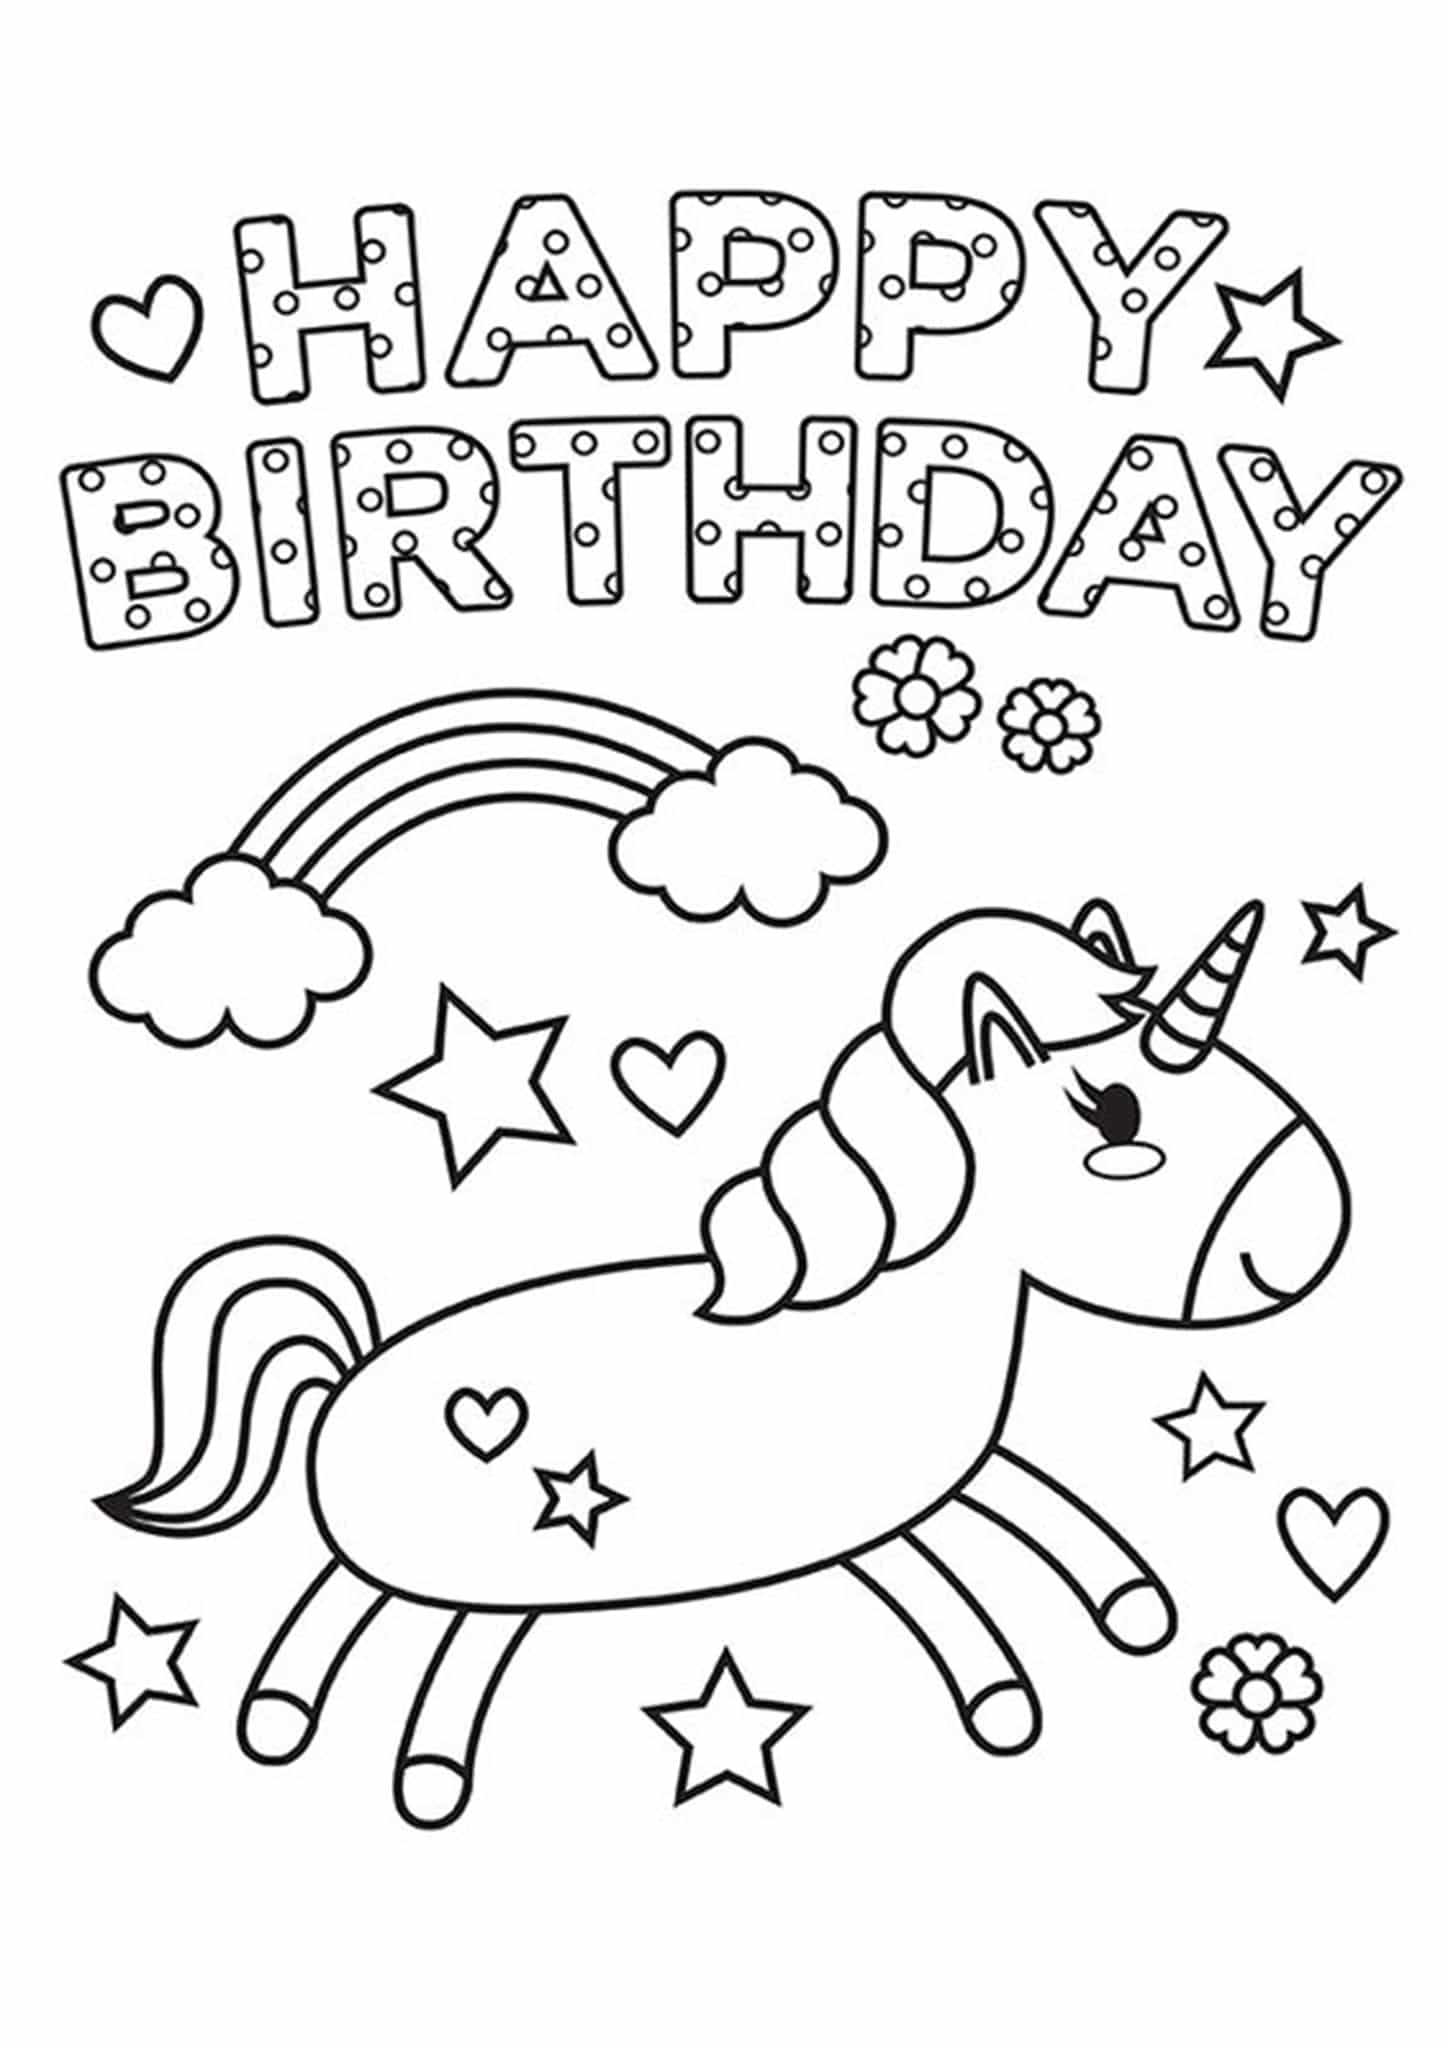 happy birthday coloring pages printable happy birthday coloring pages to download and print for free coloring printable birthday happy pages